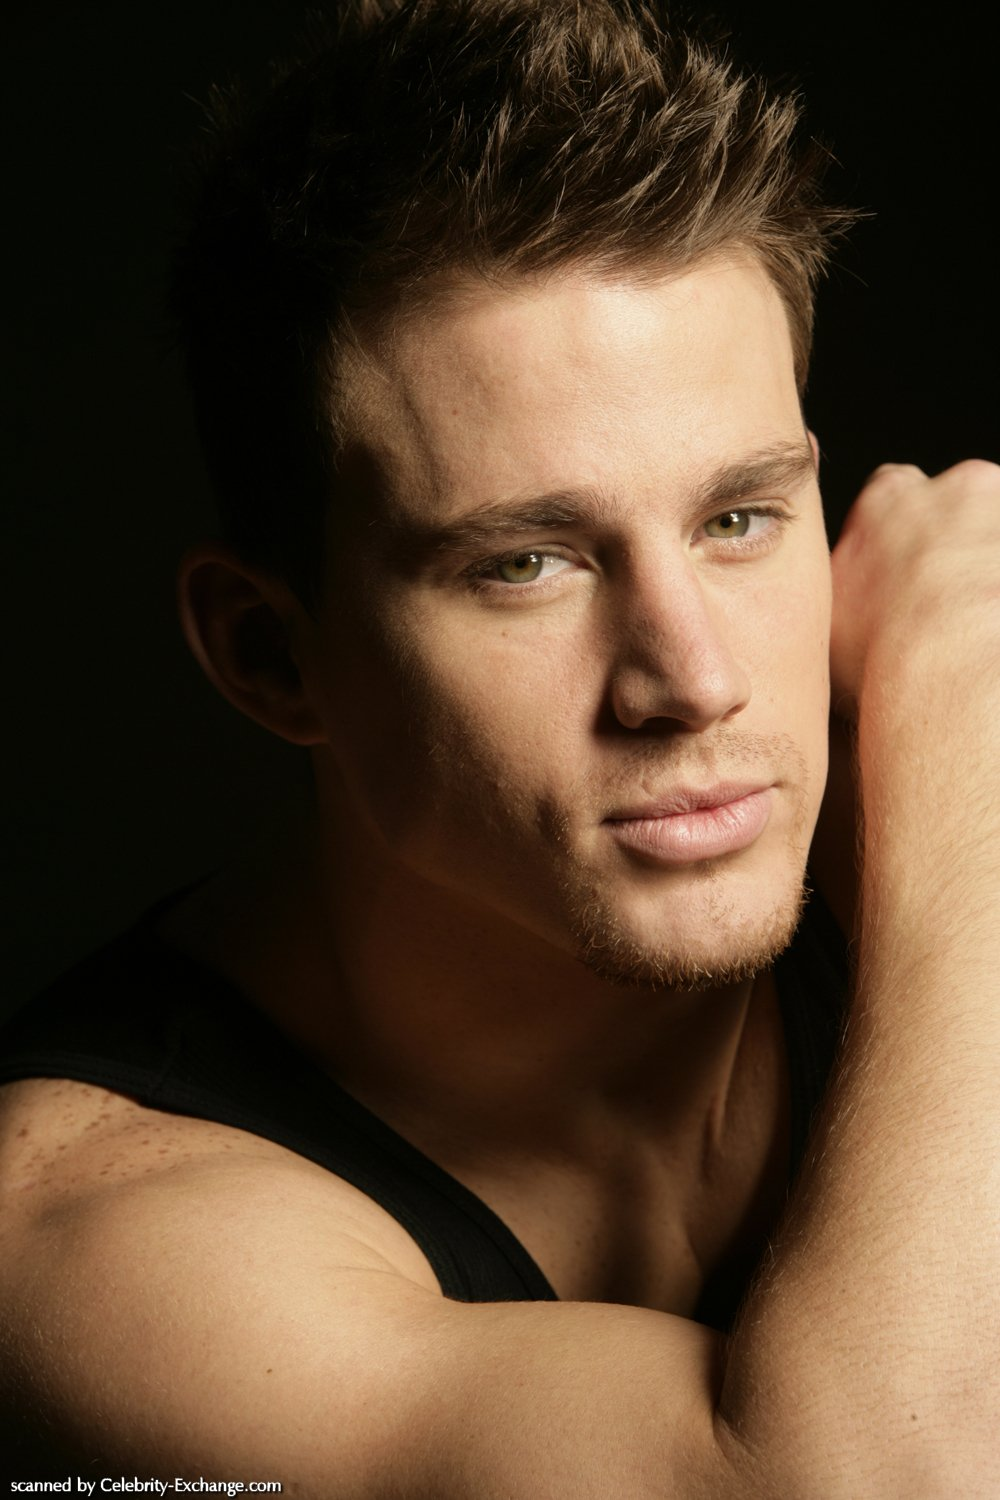 channing tatum hot or not